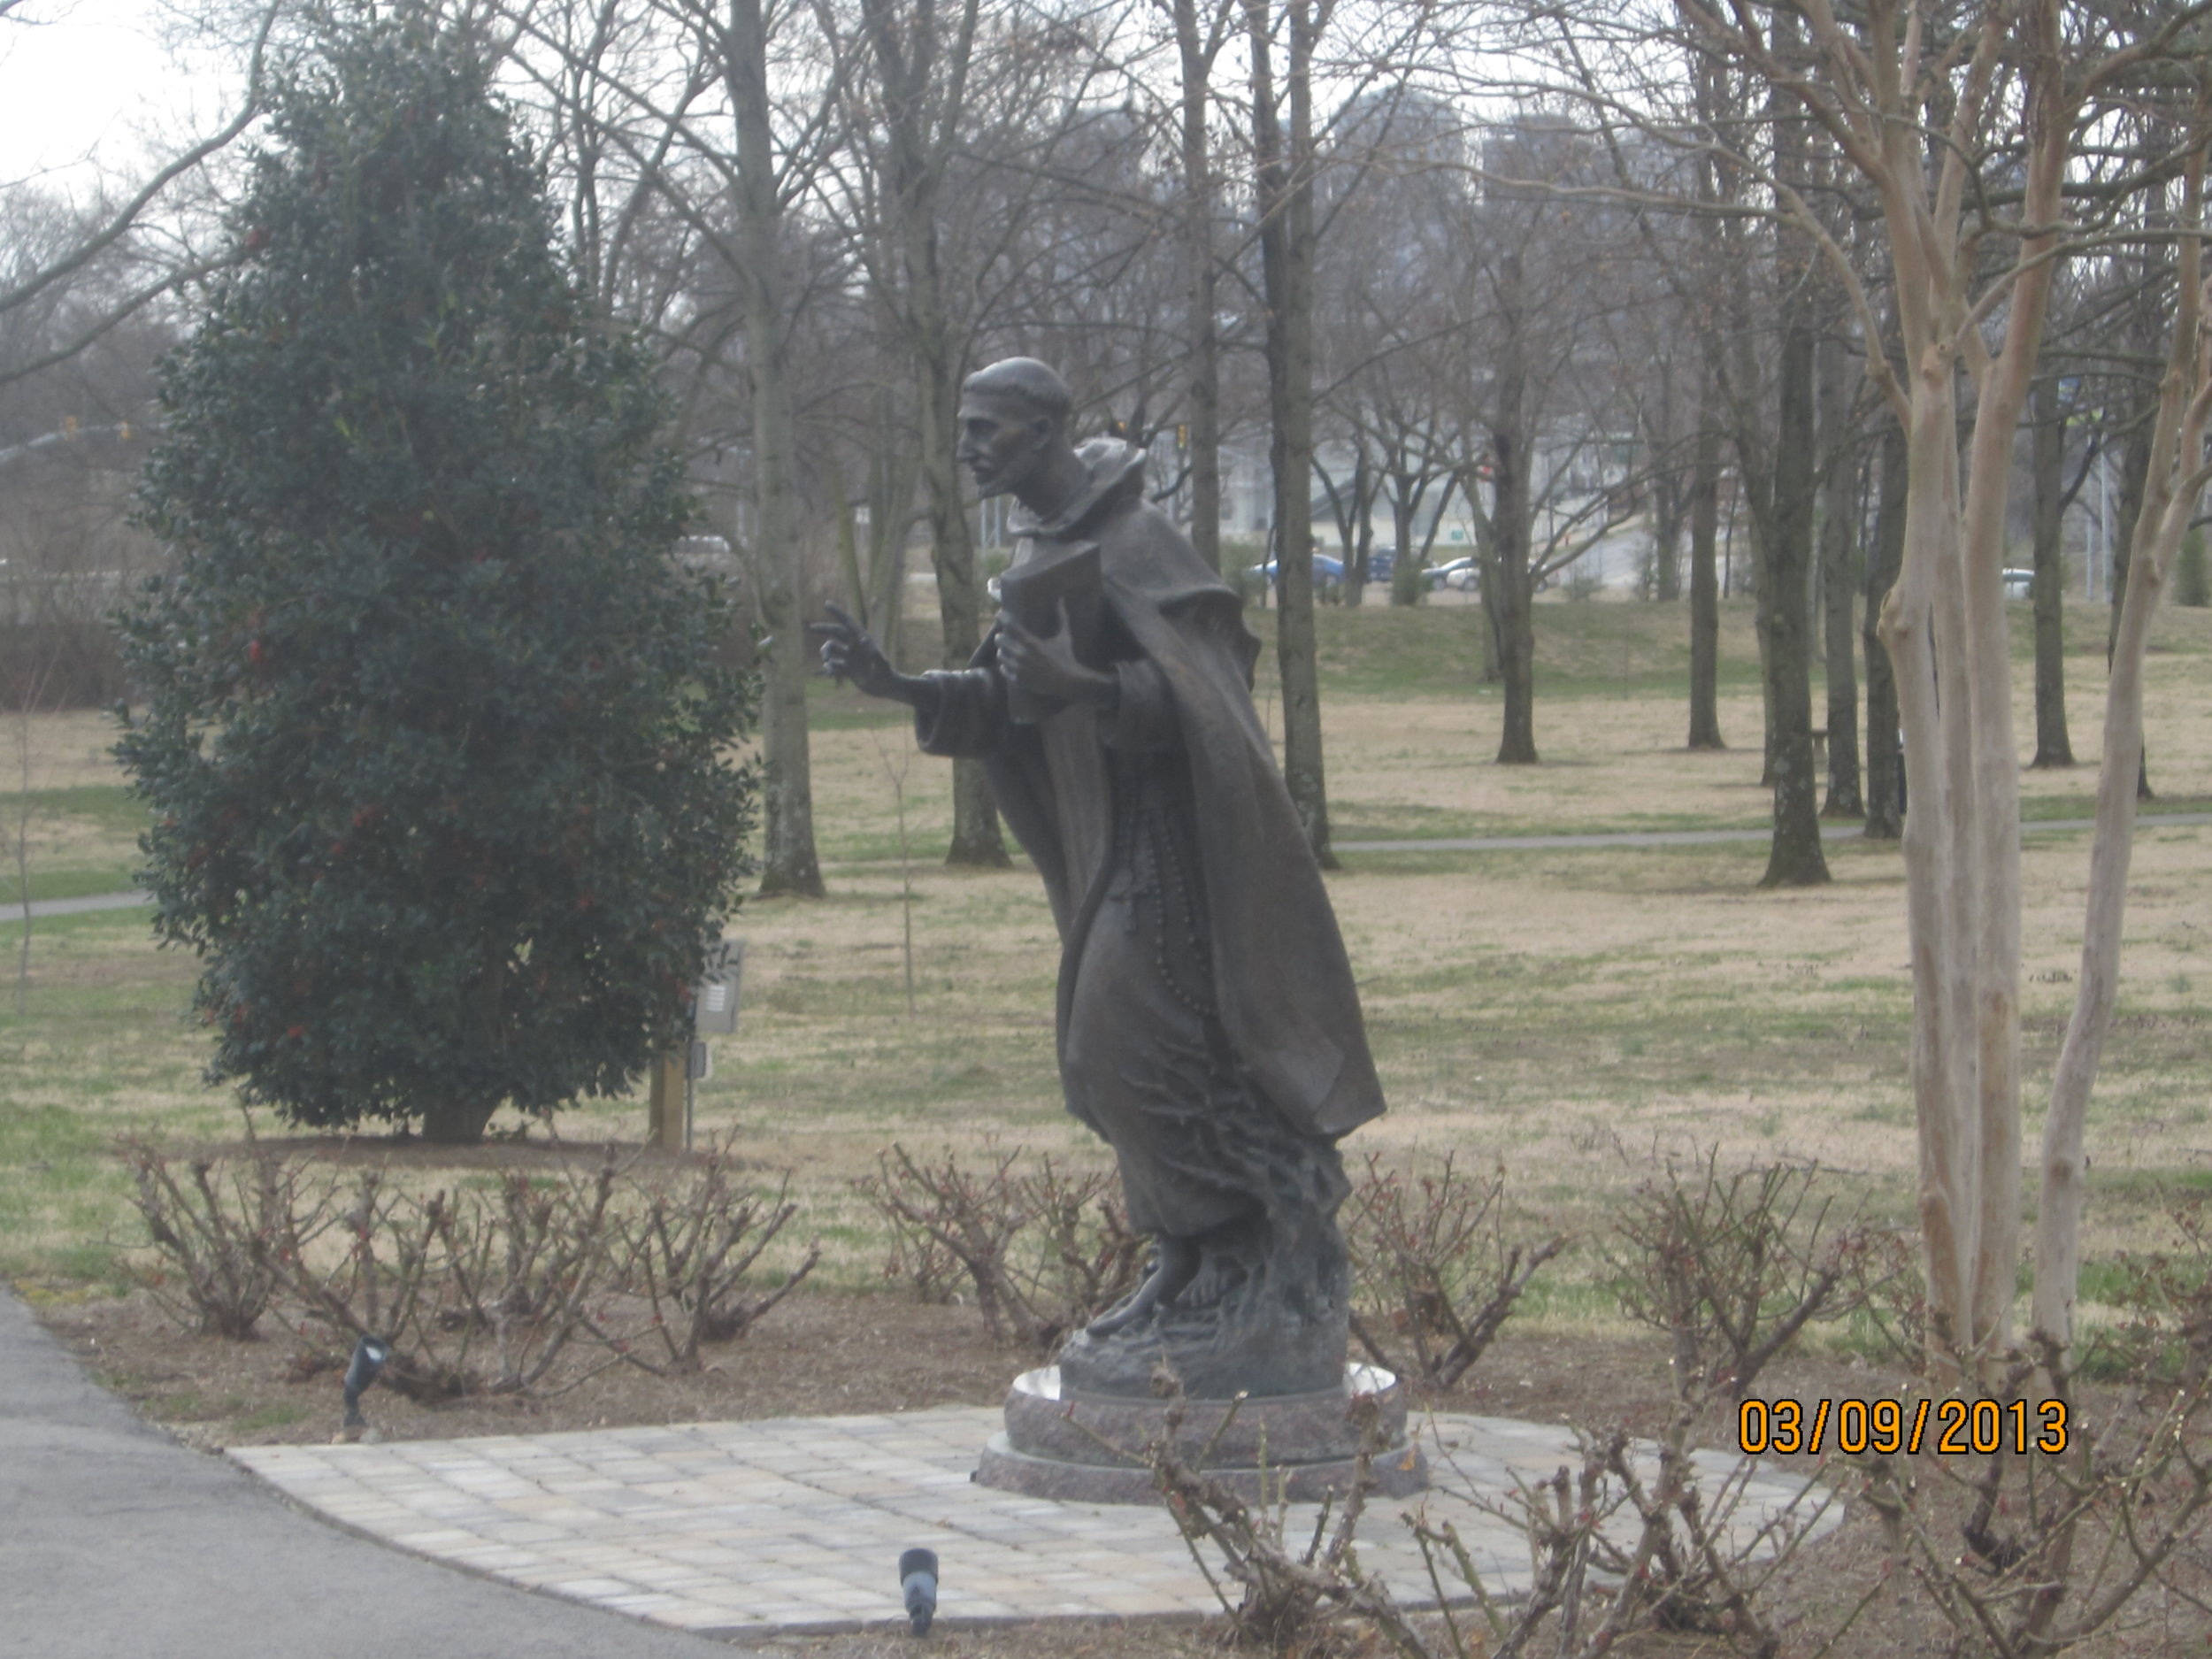 Statue of St. Dominic on the motherhouse campus of the Dominican Sister of St. Cecilia, Nashville, TN.